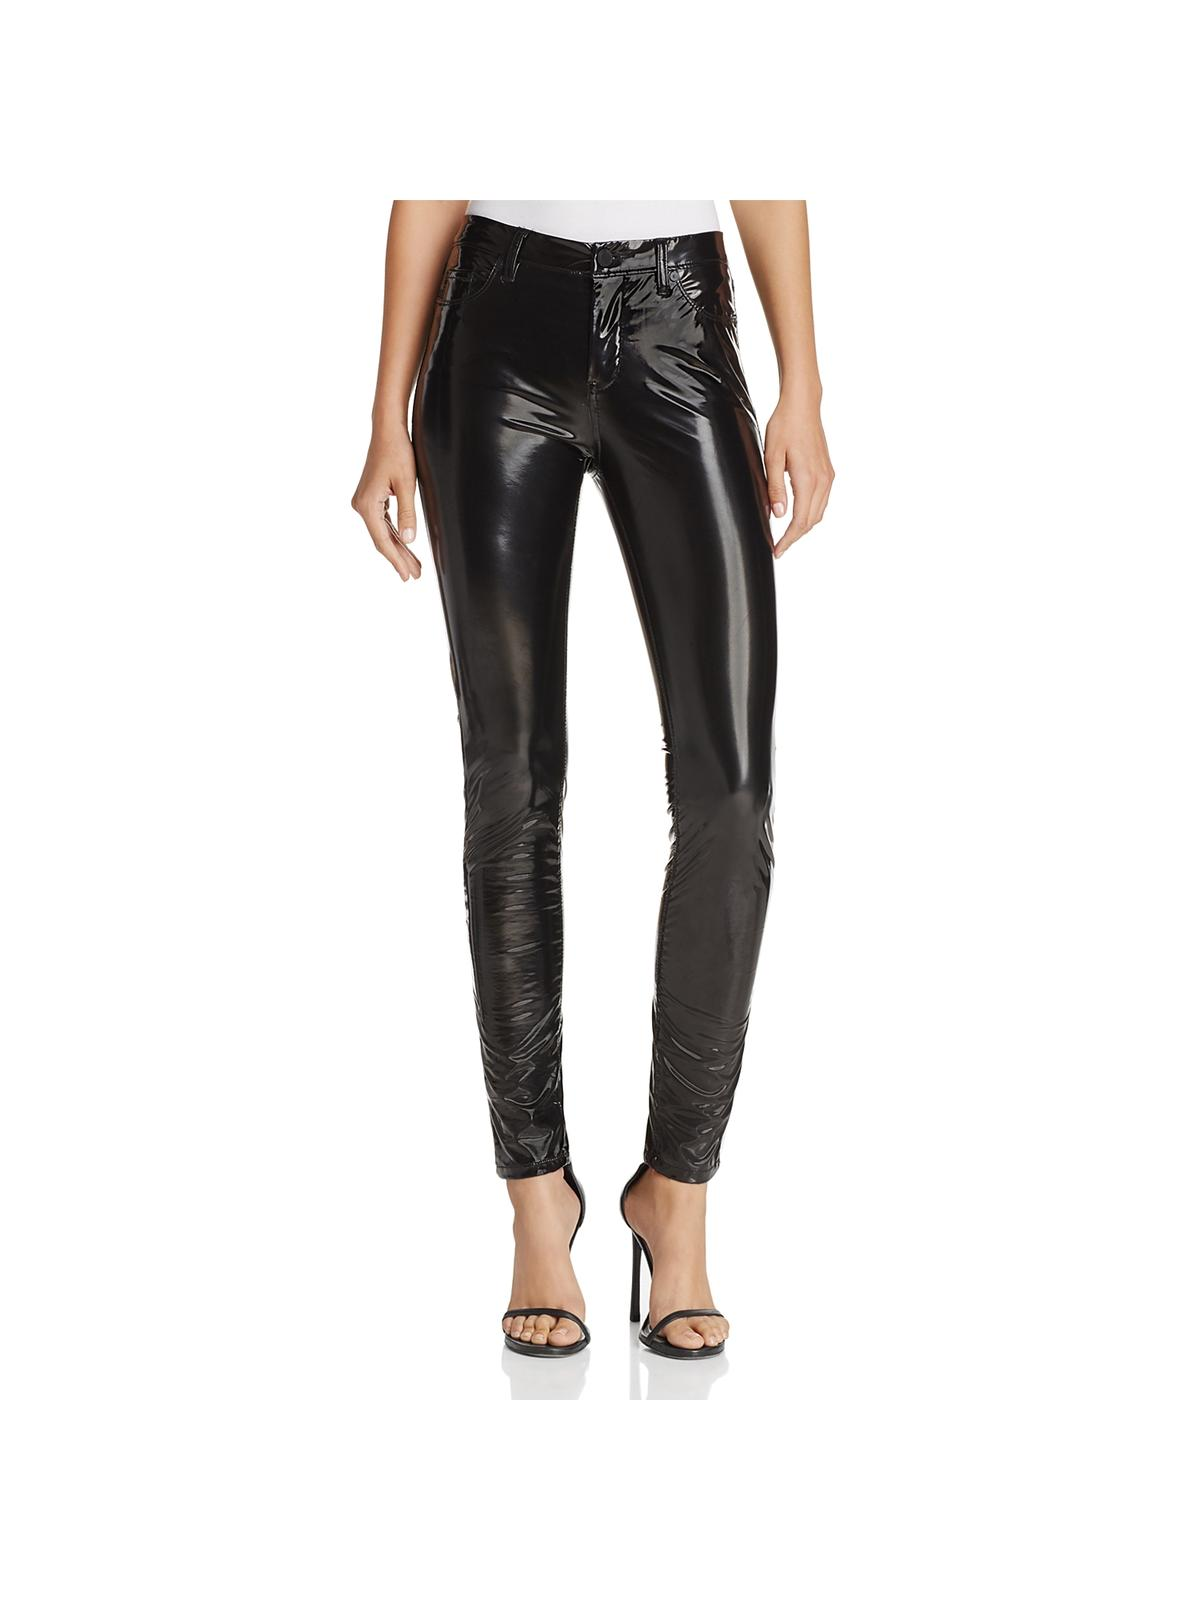 Blank Nyc Womens Faux Patent Leather High Rise Skinny